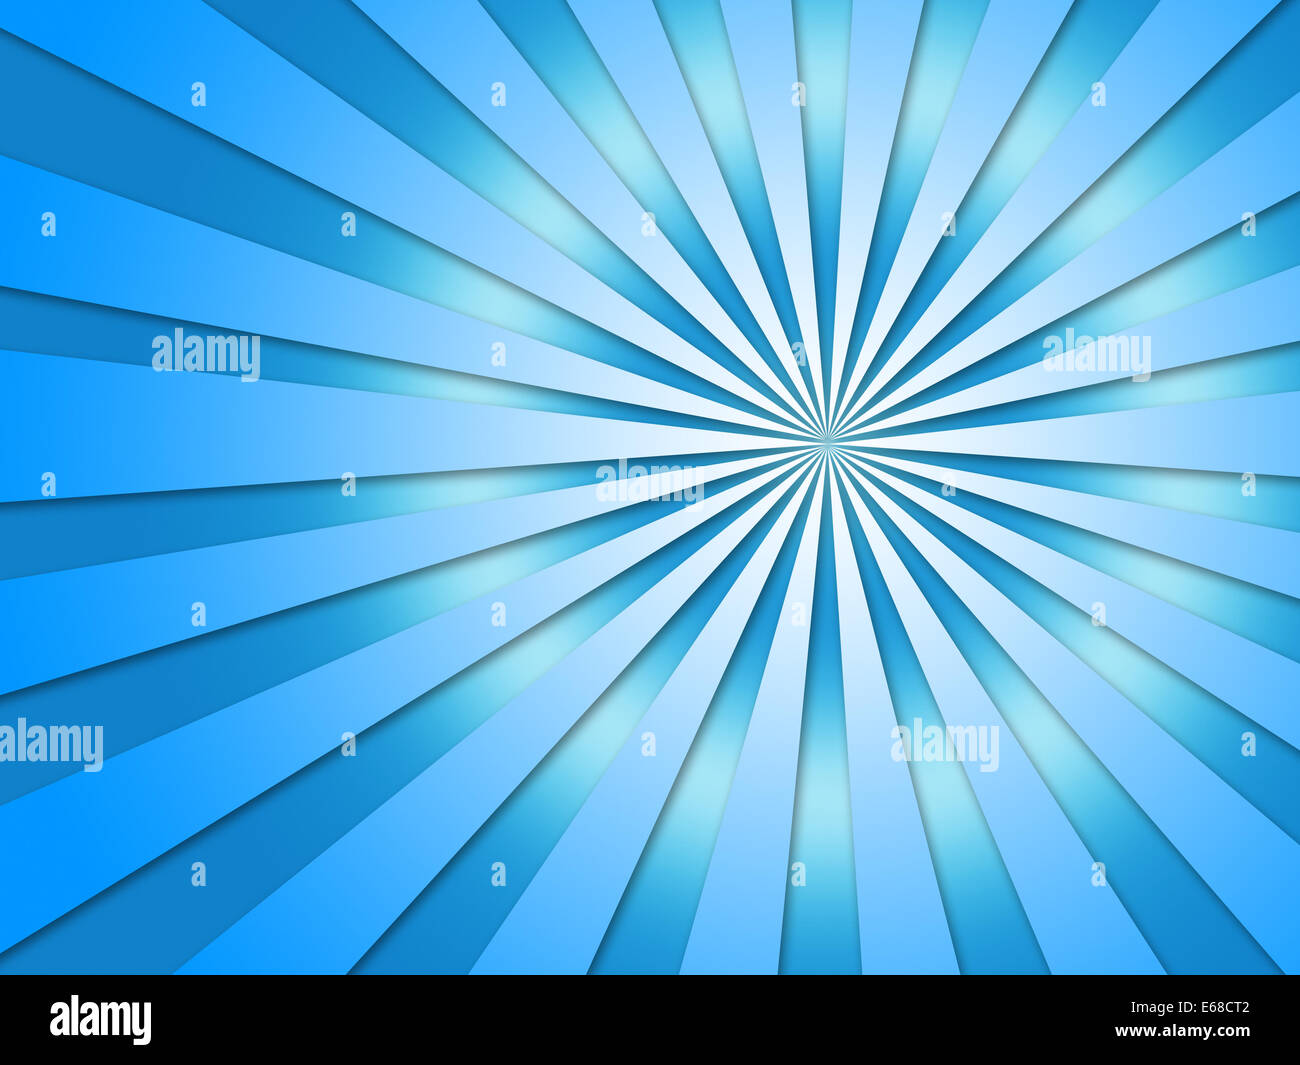 Striped Tunnel Background Meaning Dizziness And Bright